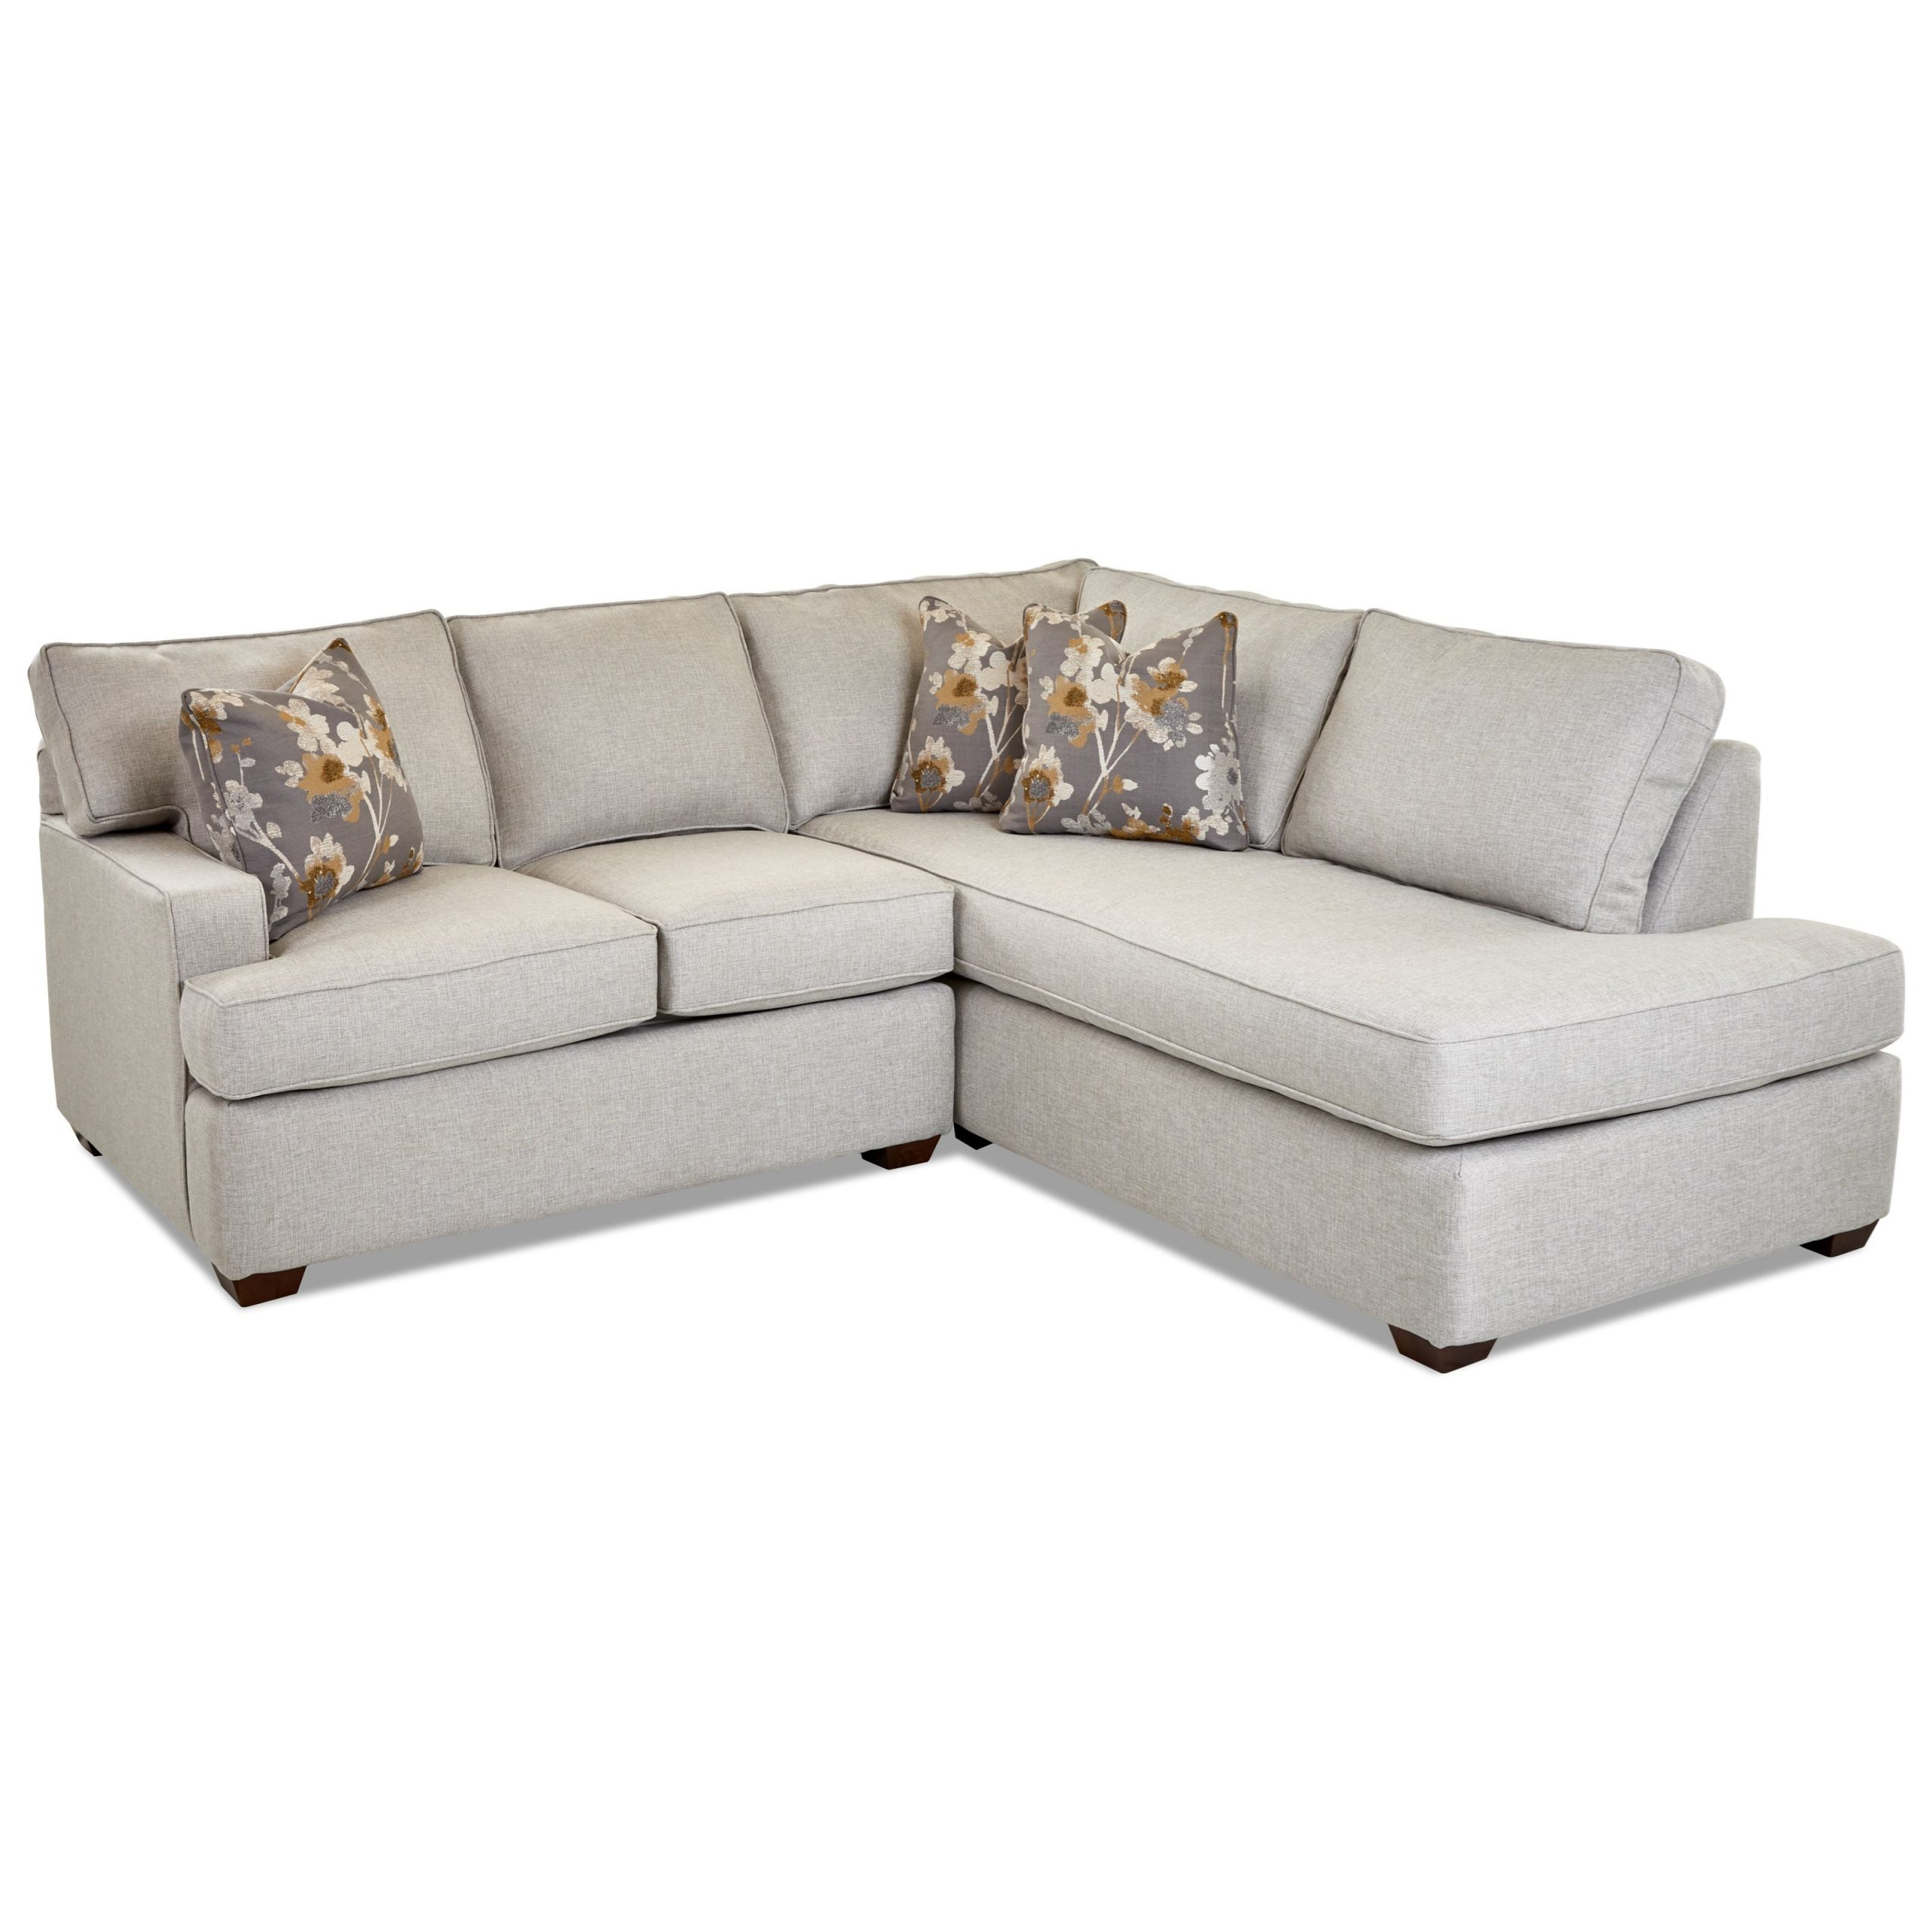 Klaussner Selection Contemporary 2 Piece Chaise Sofa W Throughout Evan 2 Piece Sectionals With Raf Chaise (View 14 of 15)